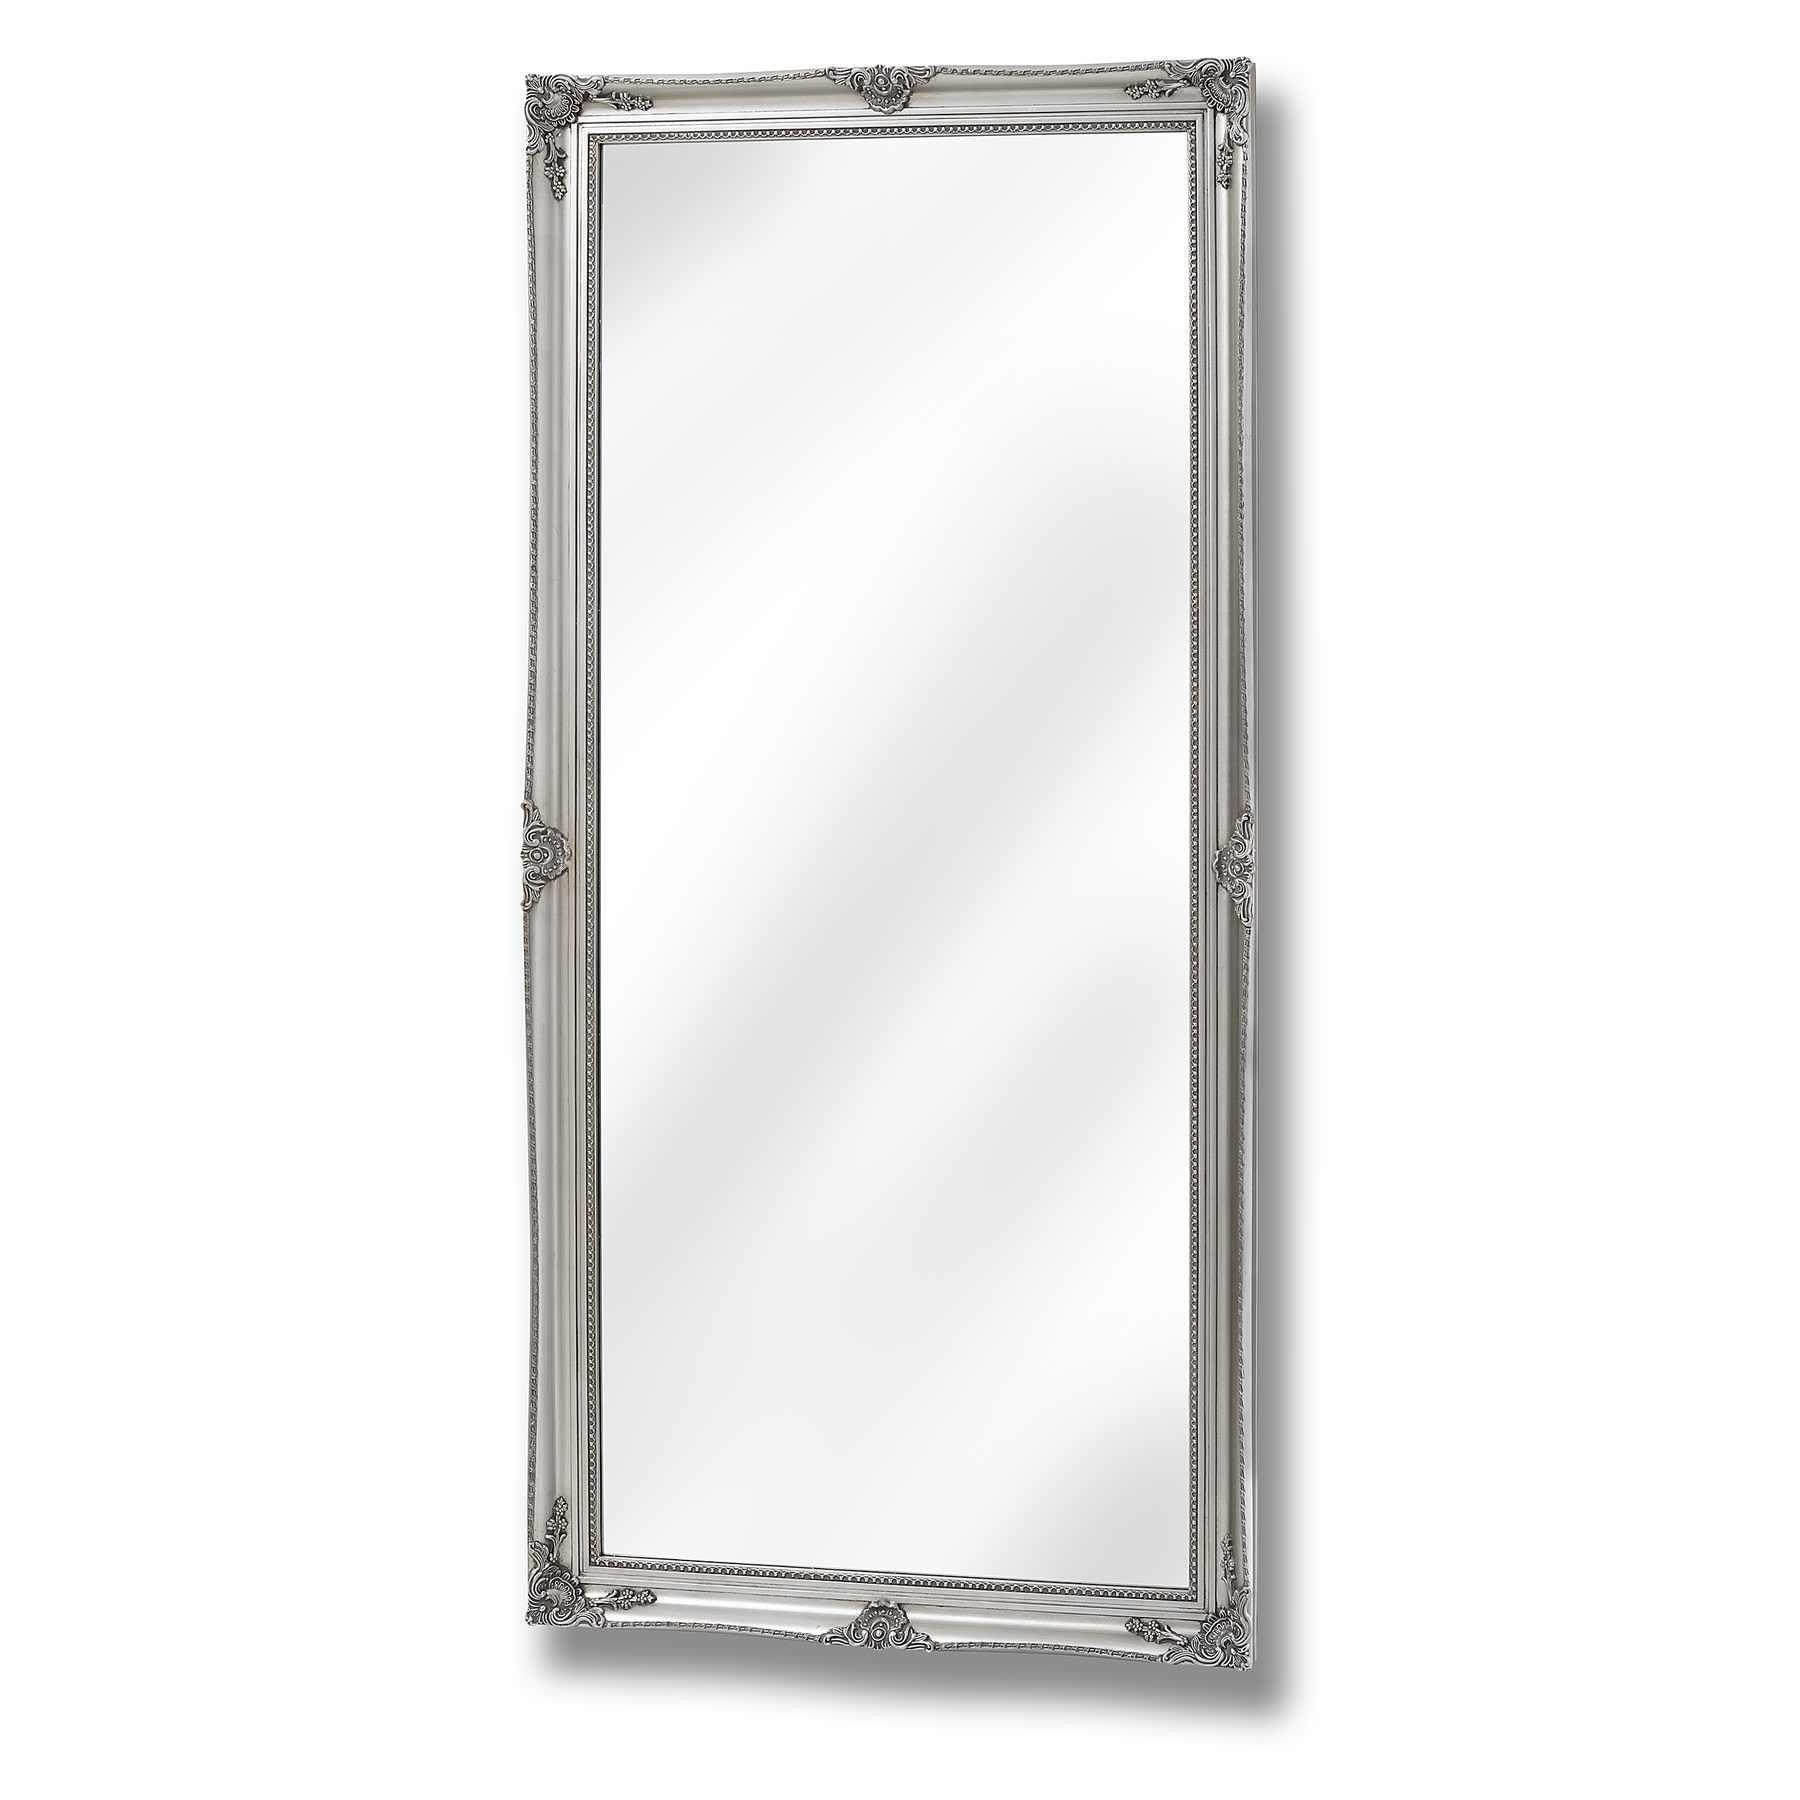 Silver Full Length Mirror 41 Stunning Decor With Large Full Length Inside Silver Long Mirror (Image 16 of 20)